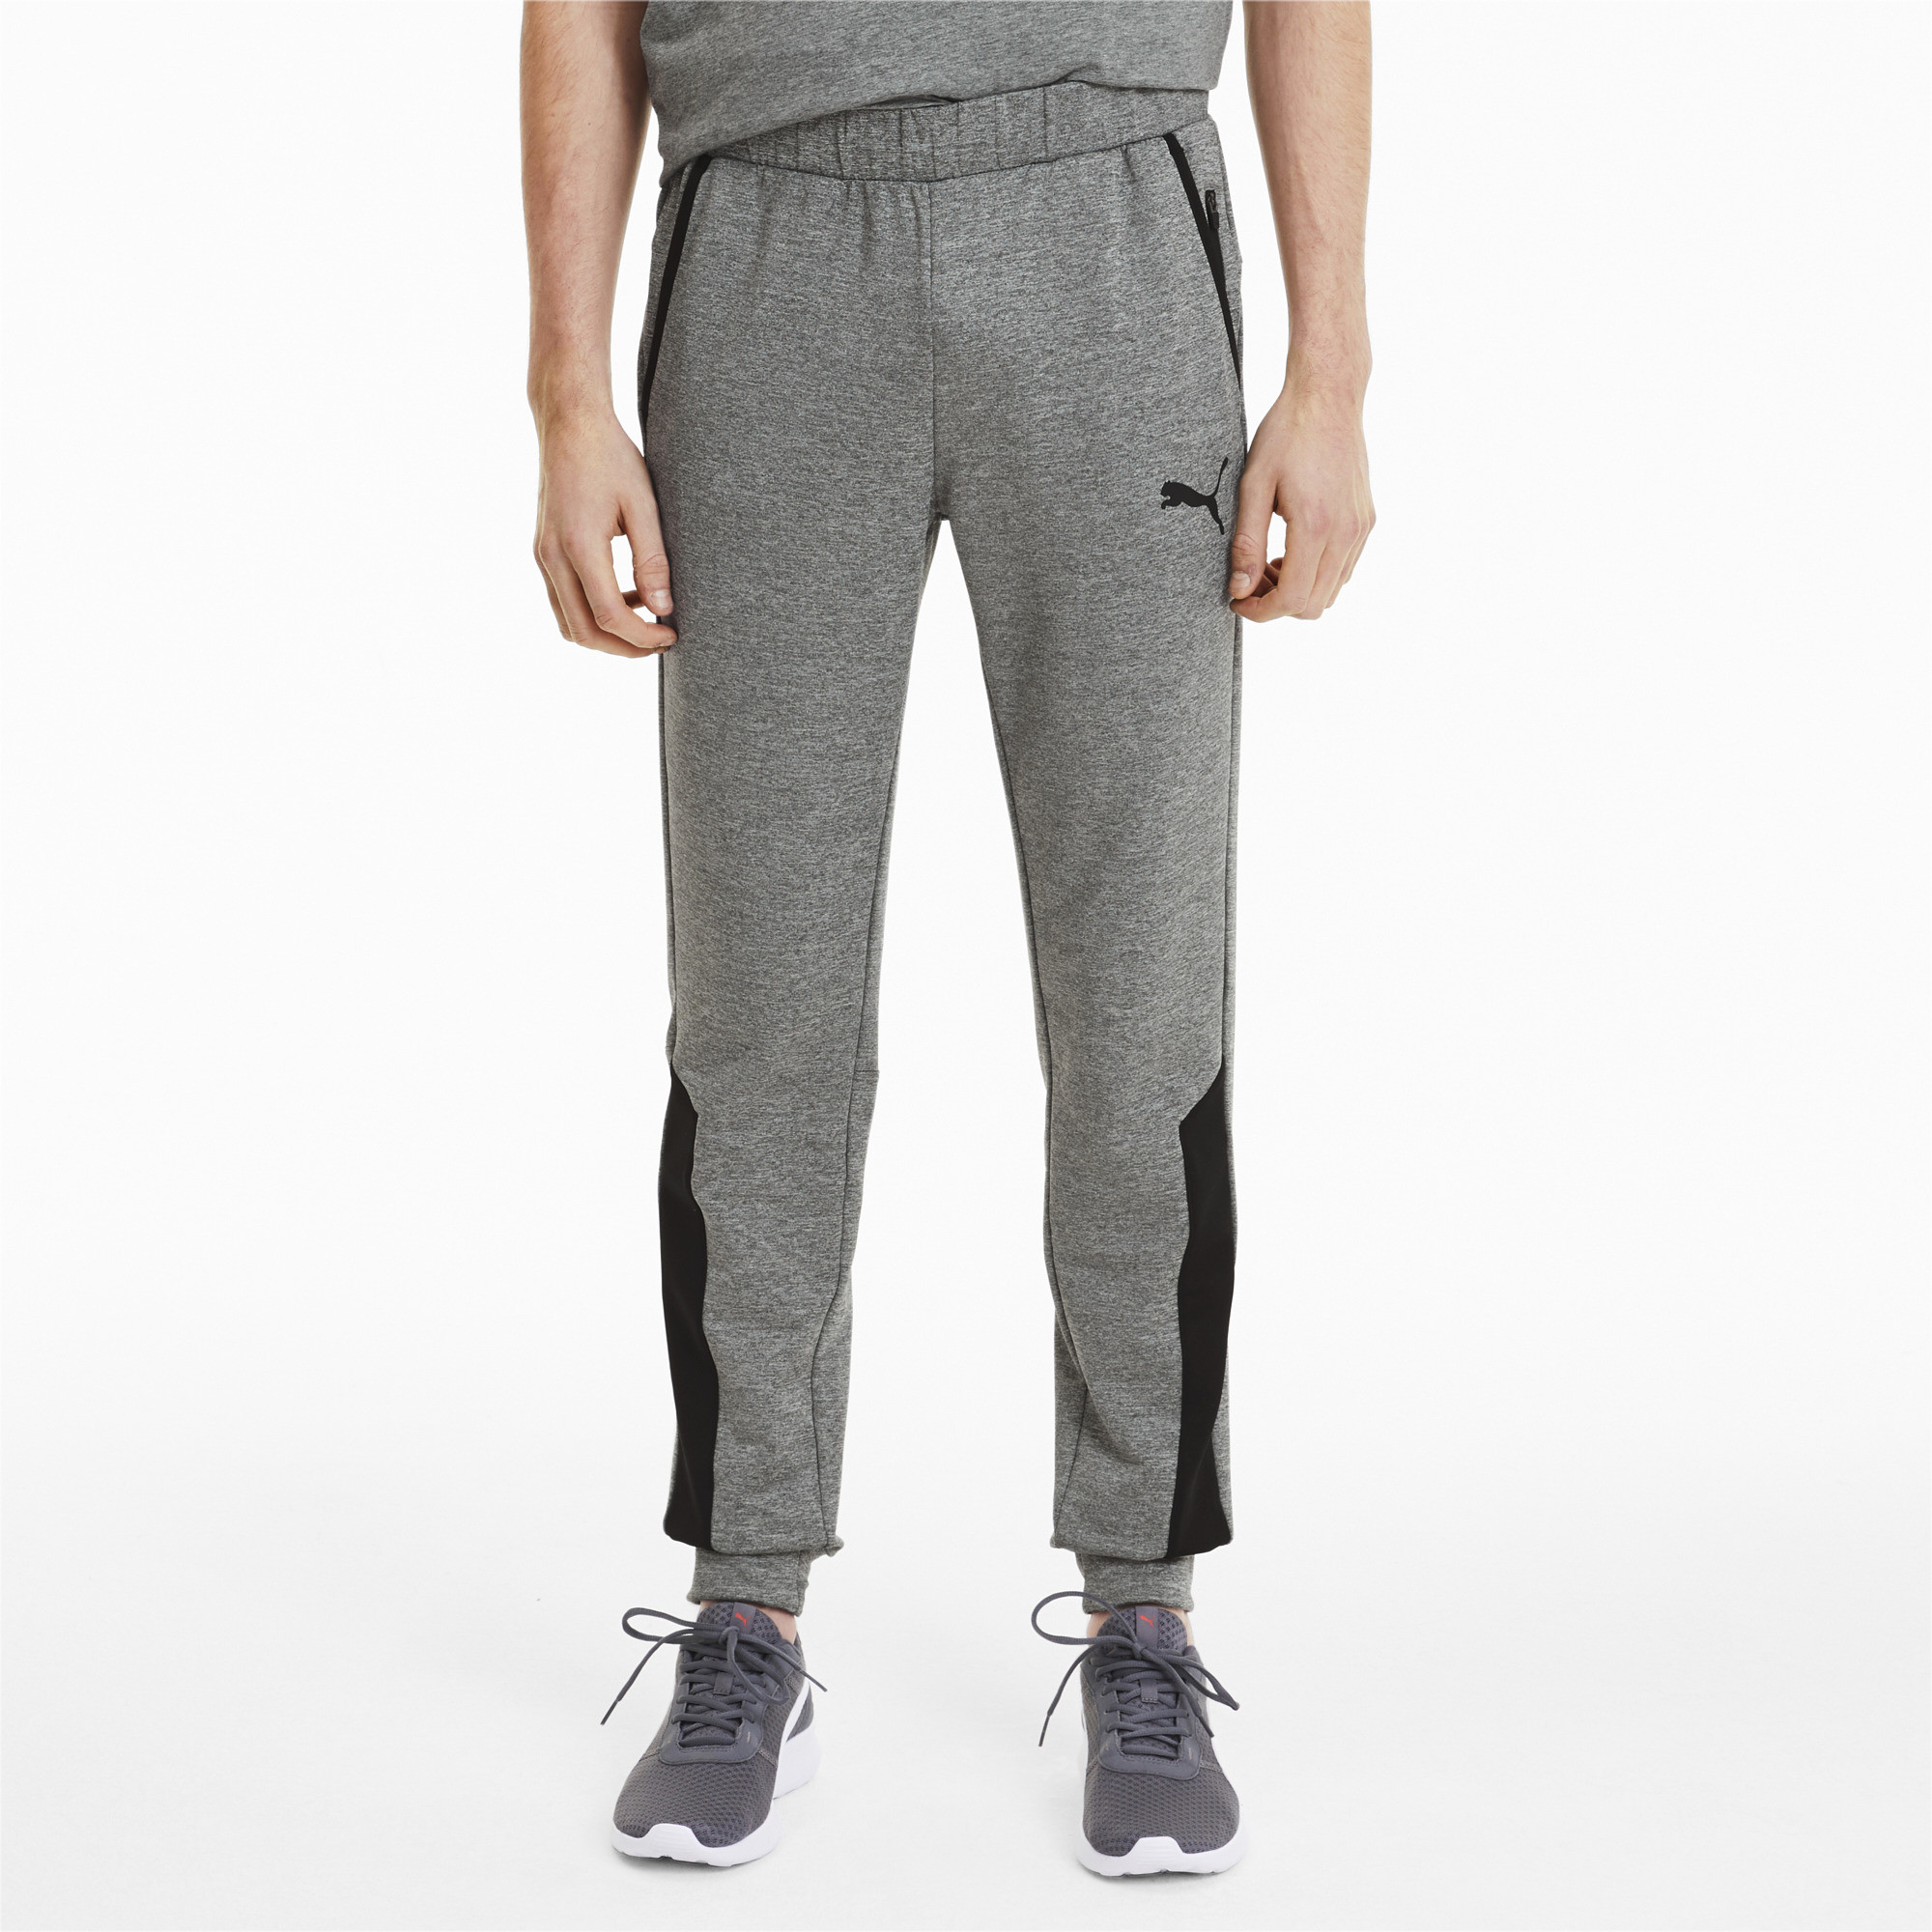 PUMA-RTG-Men-039-s-Knitted-Pants-Men-Knitted-Pants-Basics thumbnail 9